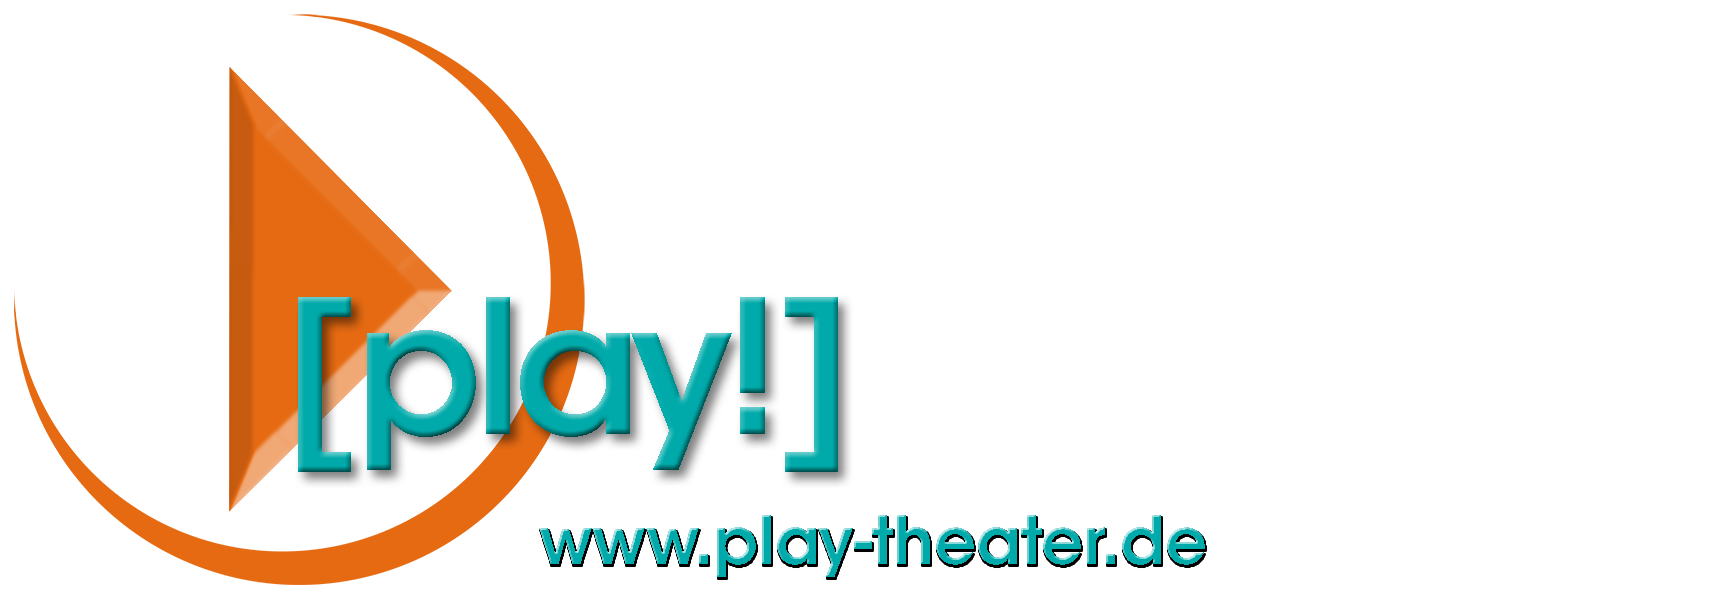 [play!] Theater